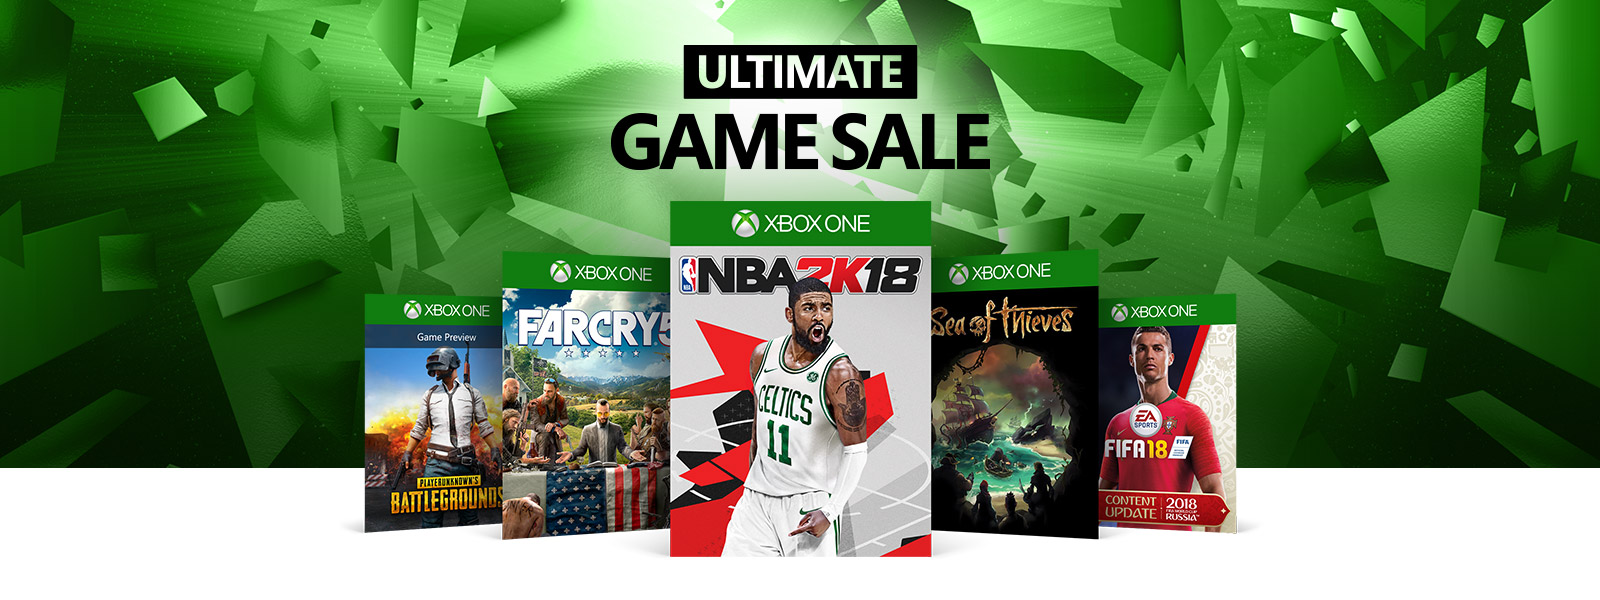 Ultimate Game Sale logo above PlayerUnknown Battlegrounds Farcry 5 NBA 2k18 Sea of Thieves FIFA 18 boxshots